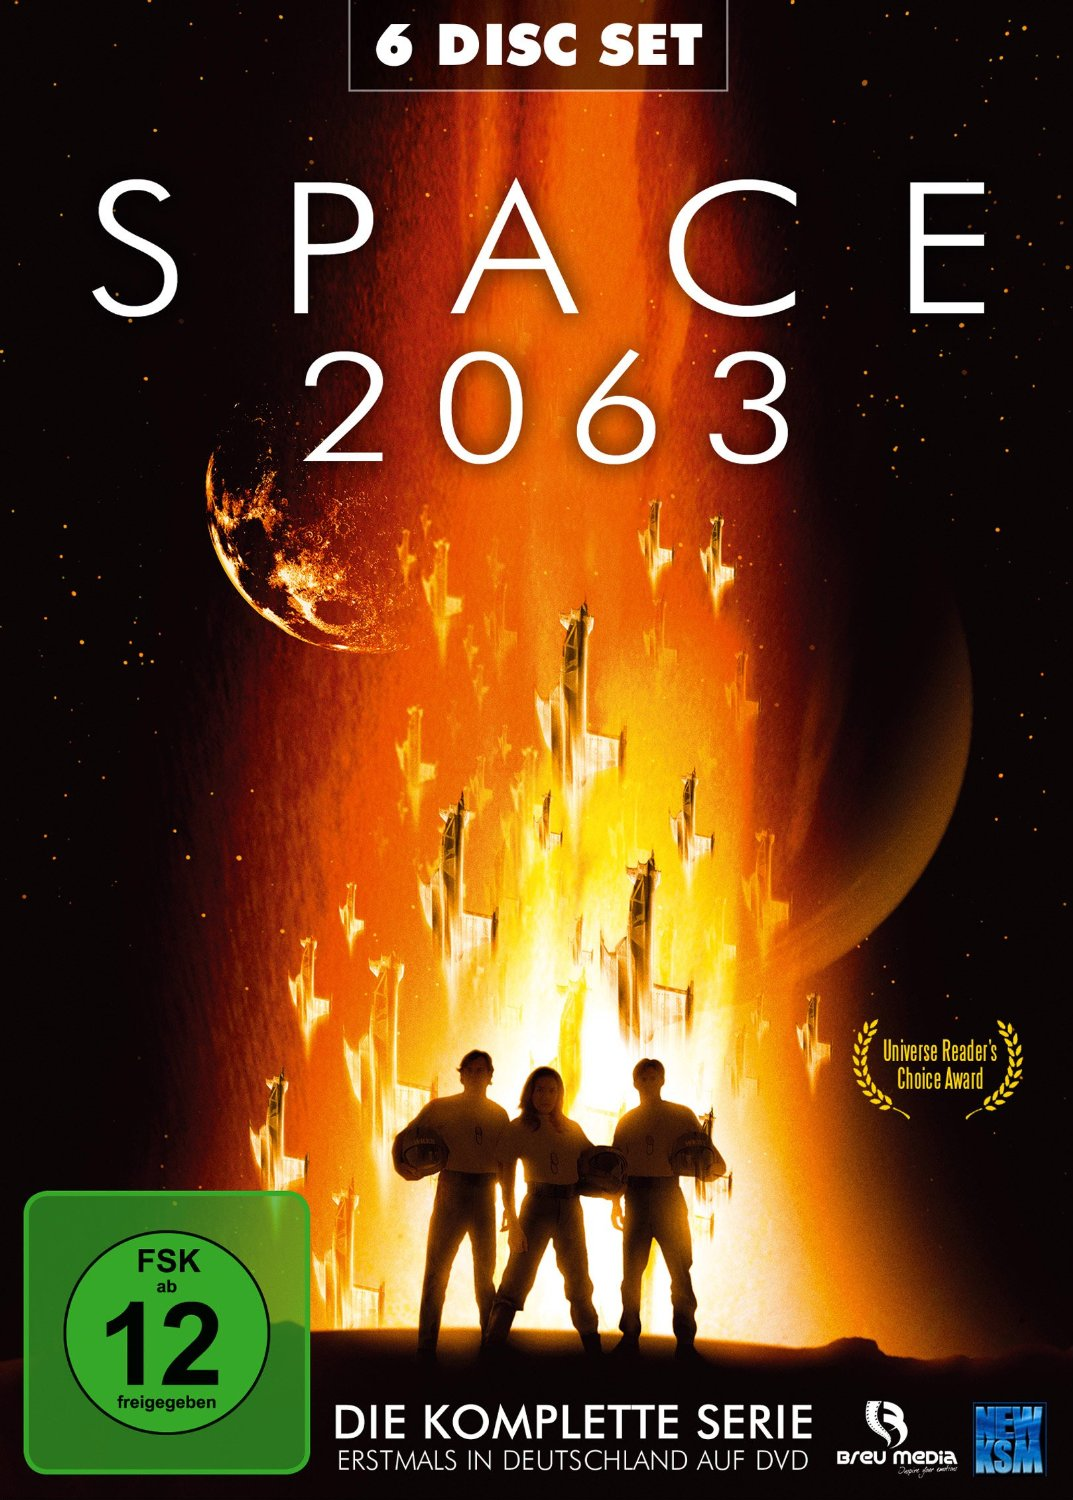 DVD-Cover: Space 2063